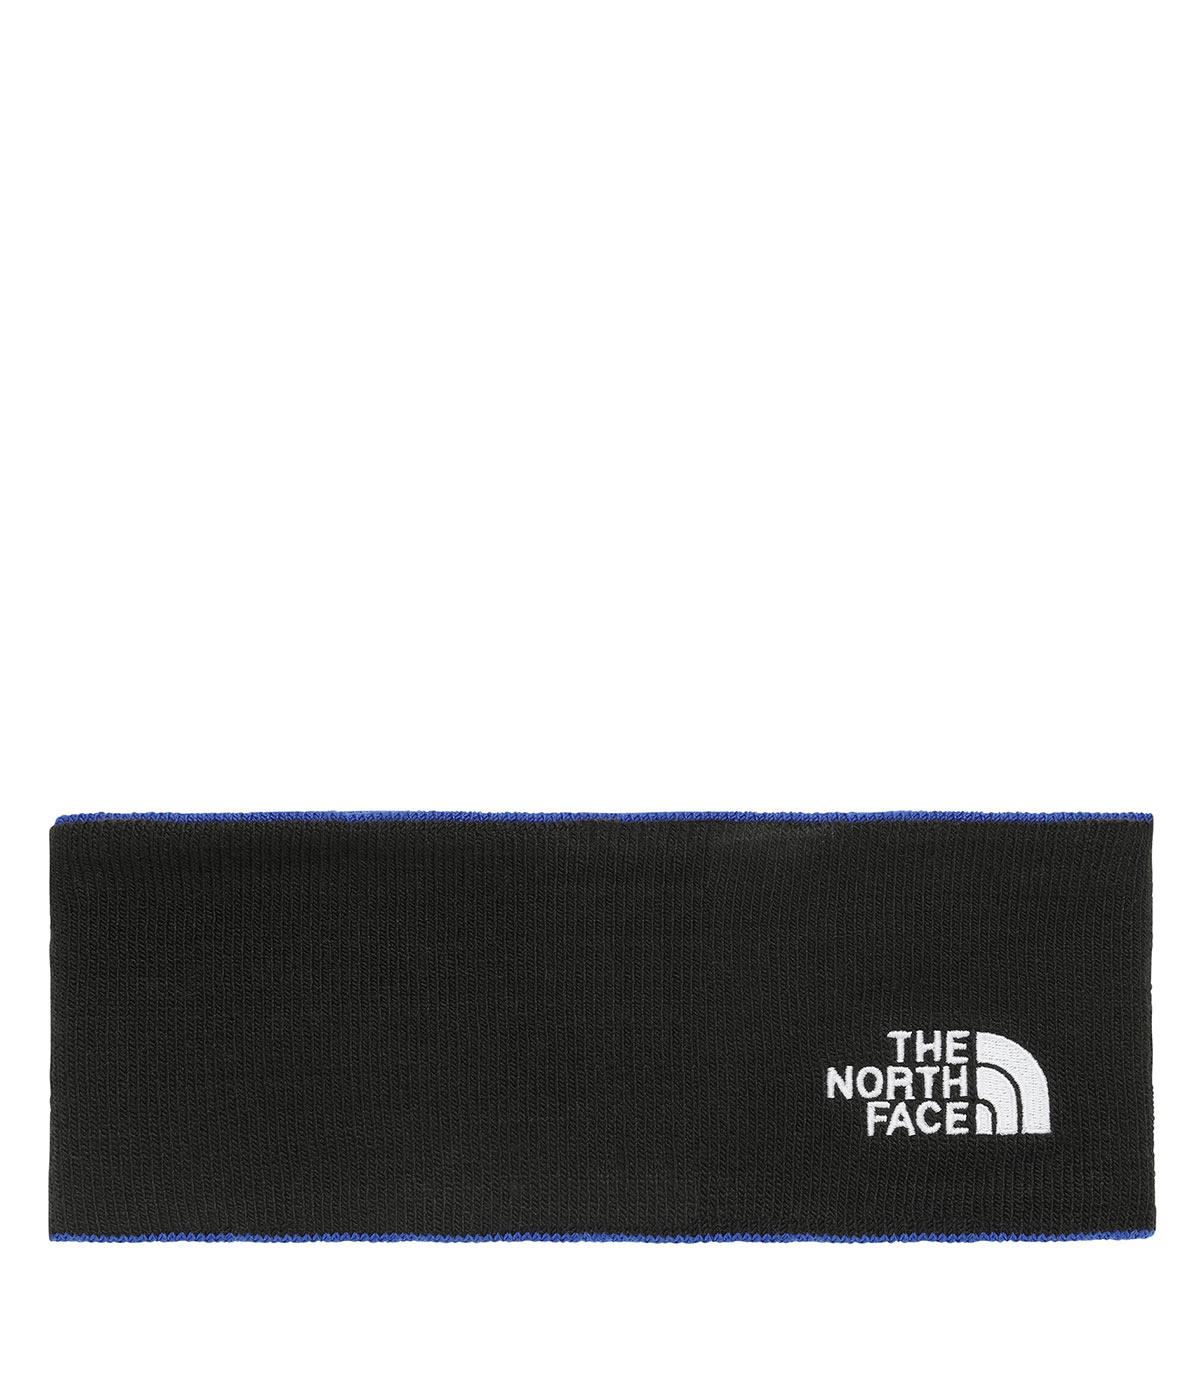 The North Face Chızzler Headband Alın Bandı NF0A2SAFEF11